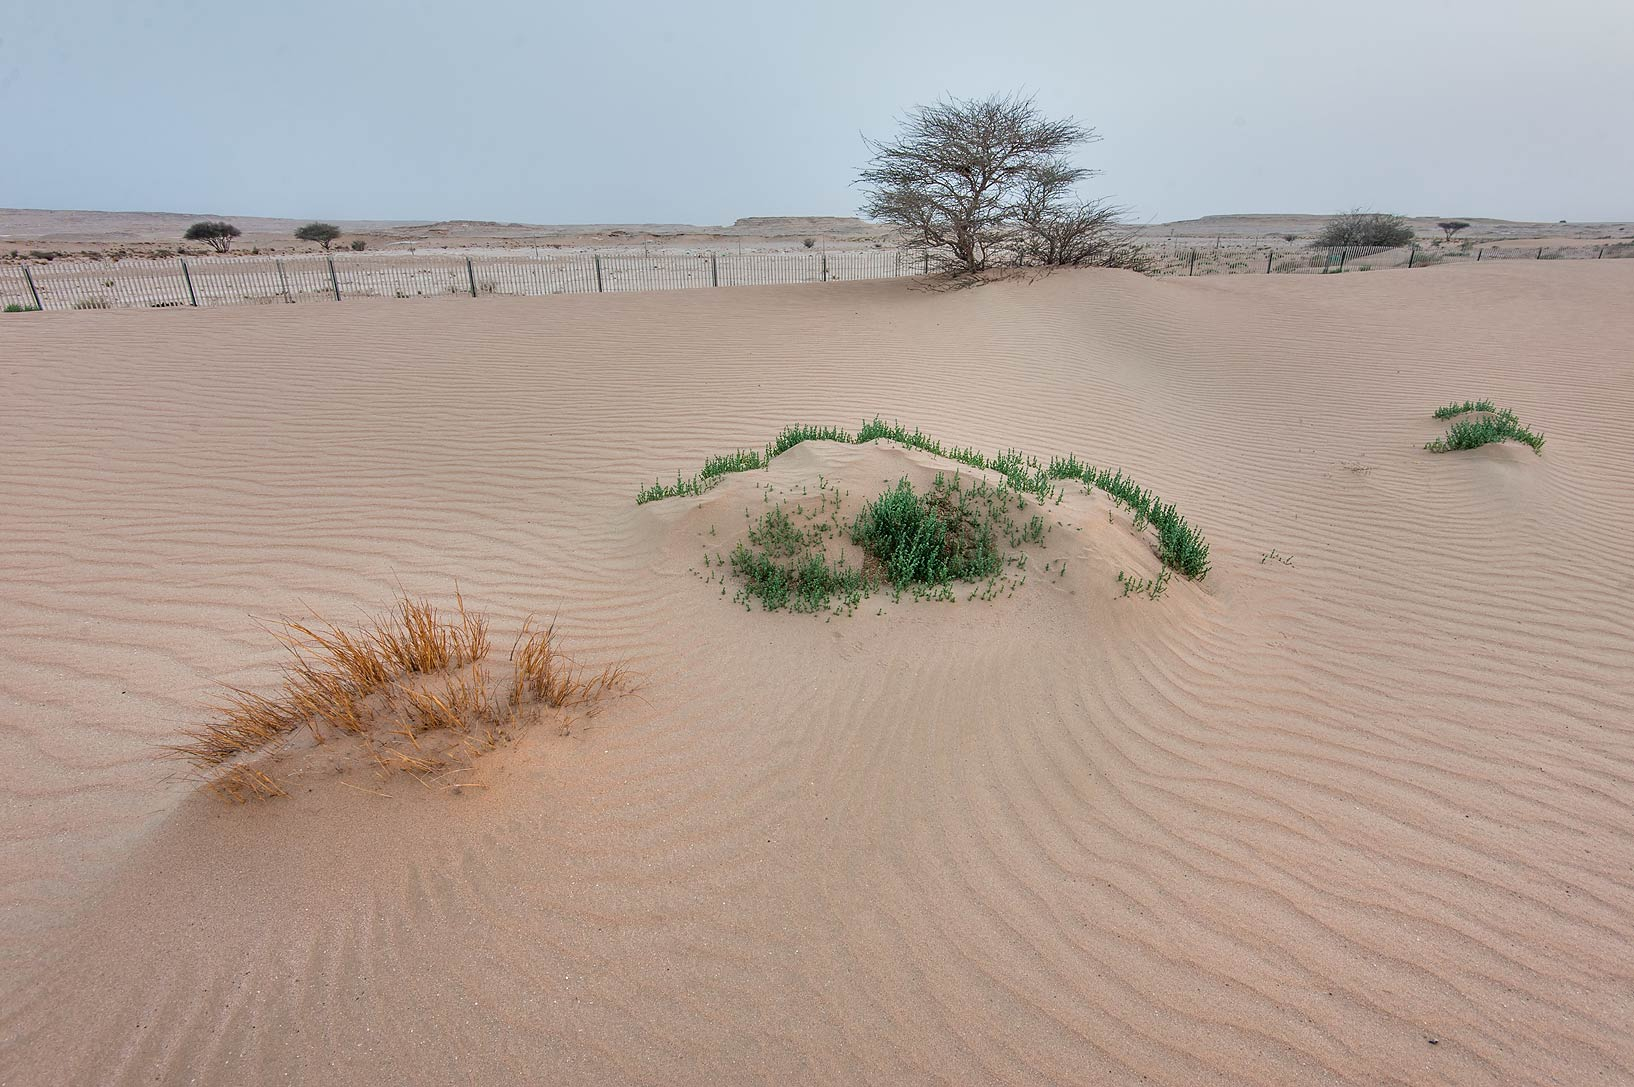 Windblown sand on roadside of Salwa Rd. in area of Khashem Al Nekhsh. Southern Qatar